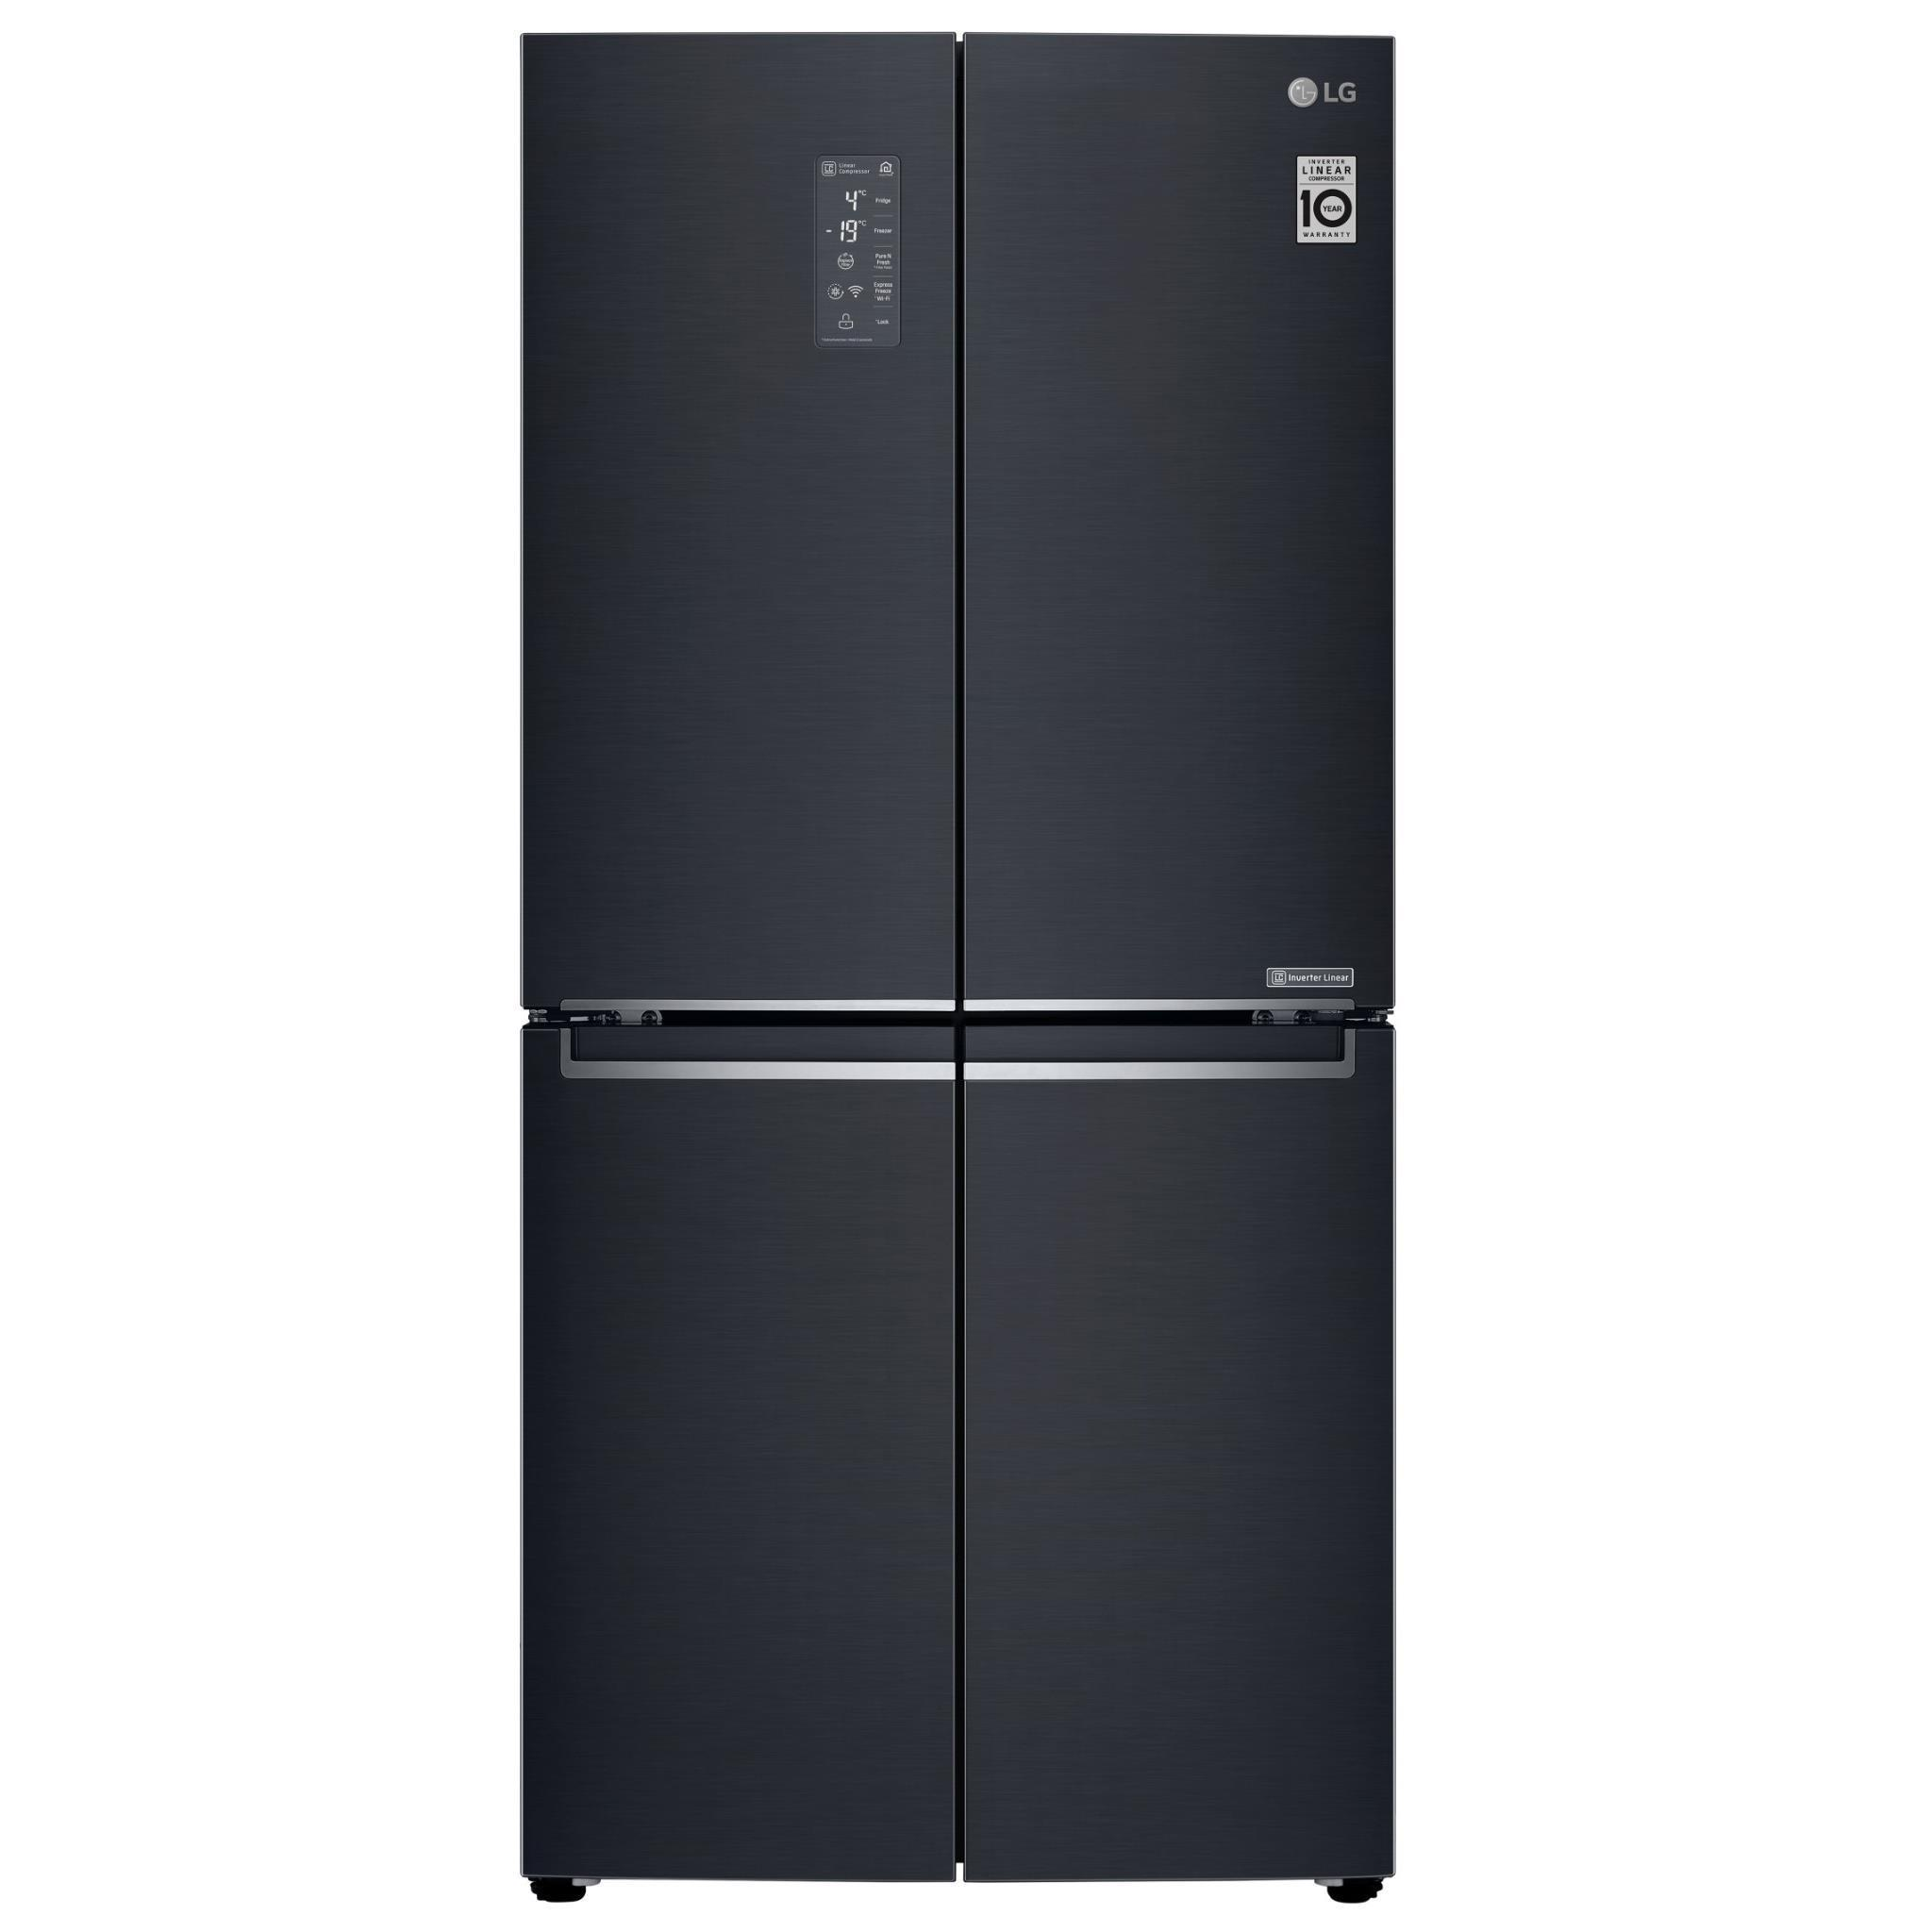 LG GF-B590MBL 594L Slim French Door Fridge (Matte Black, S/Steel)